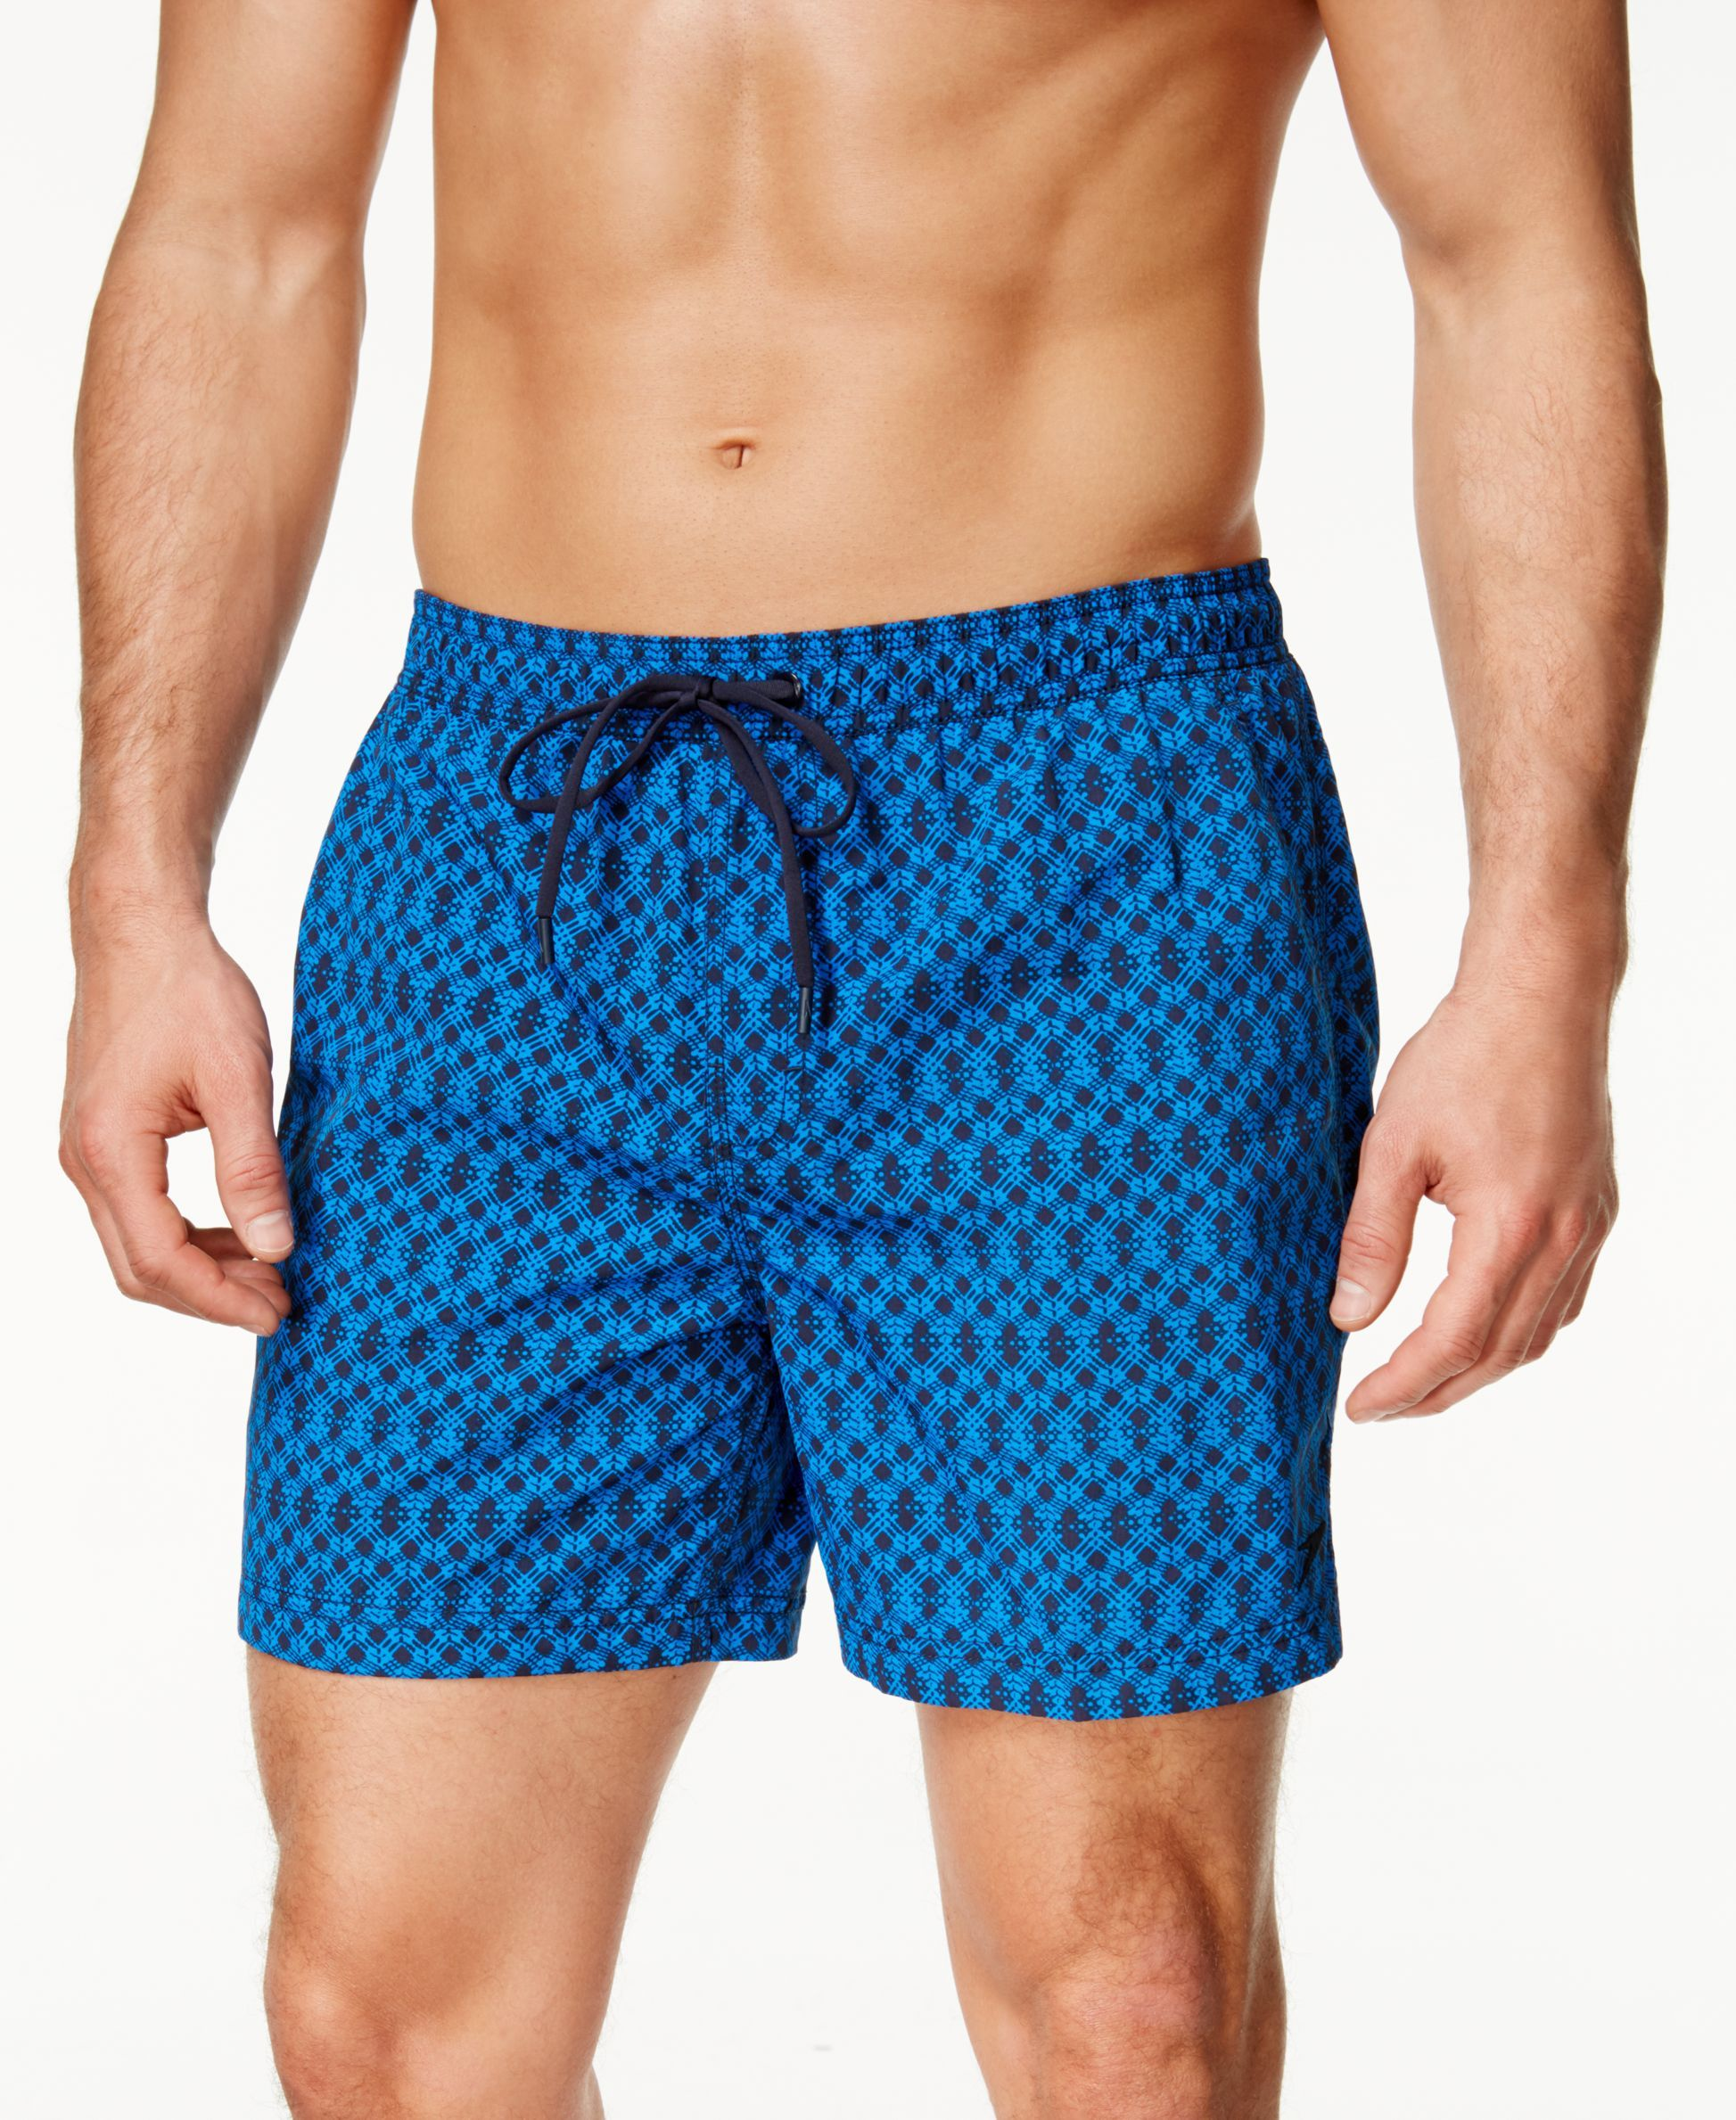 cbd2fcca78 Speedo Men's Meshed Up Volley Swim Trunks, 5